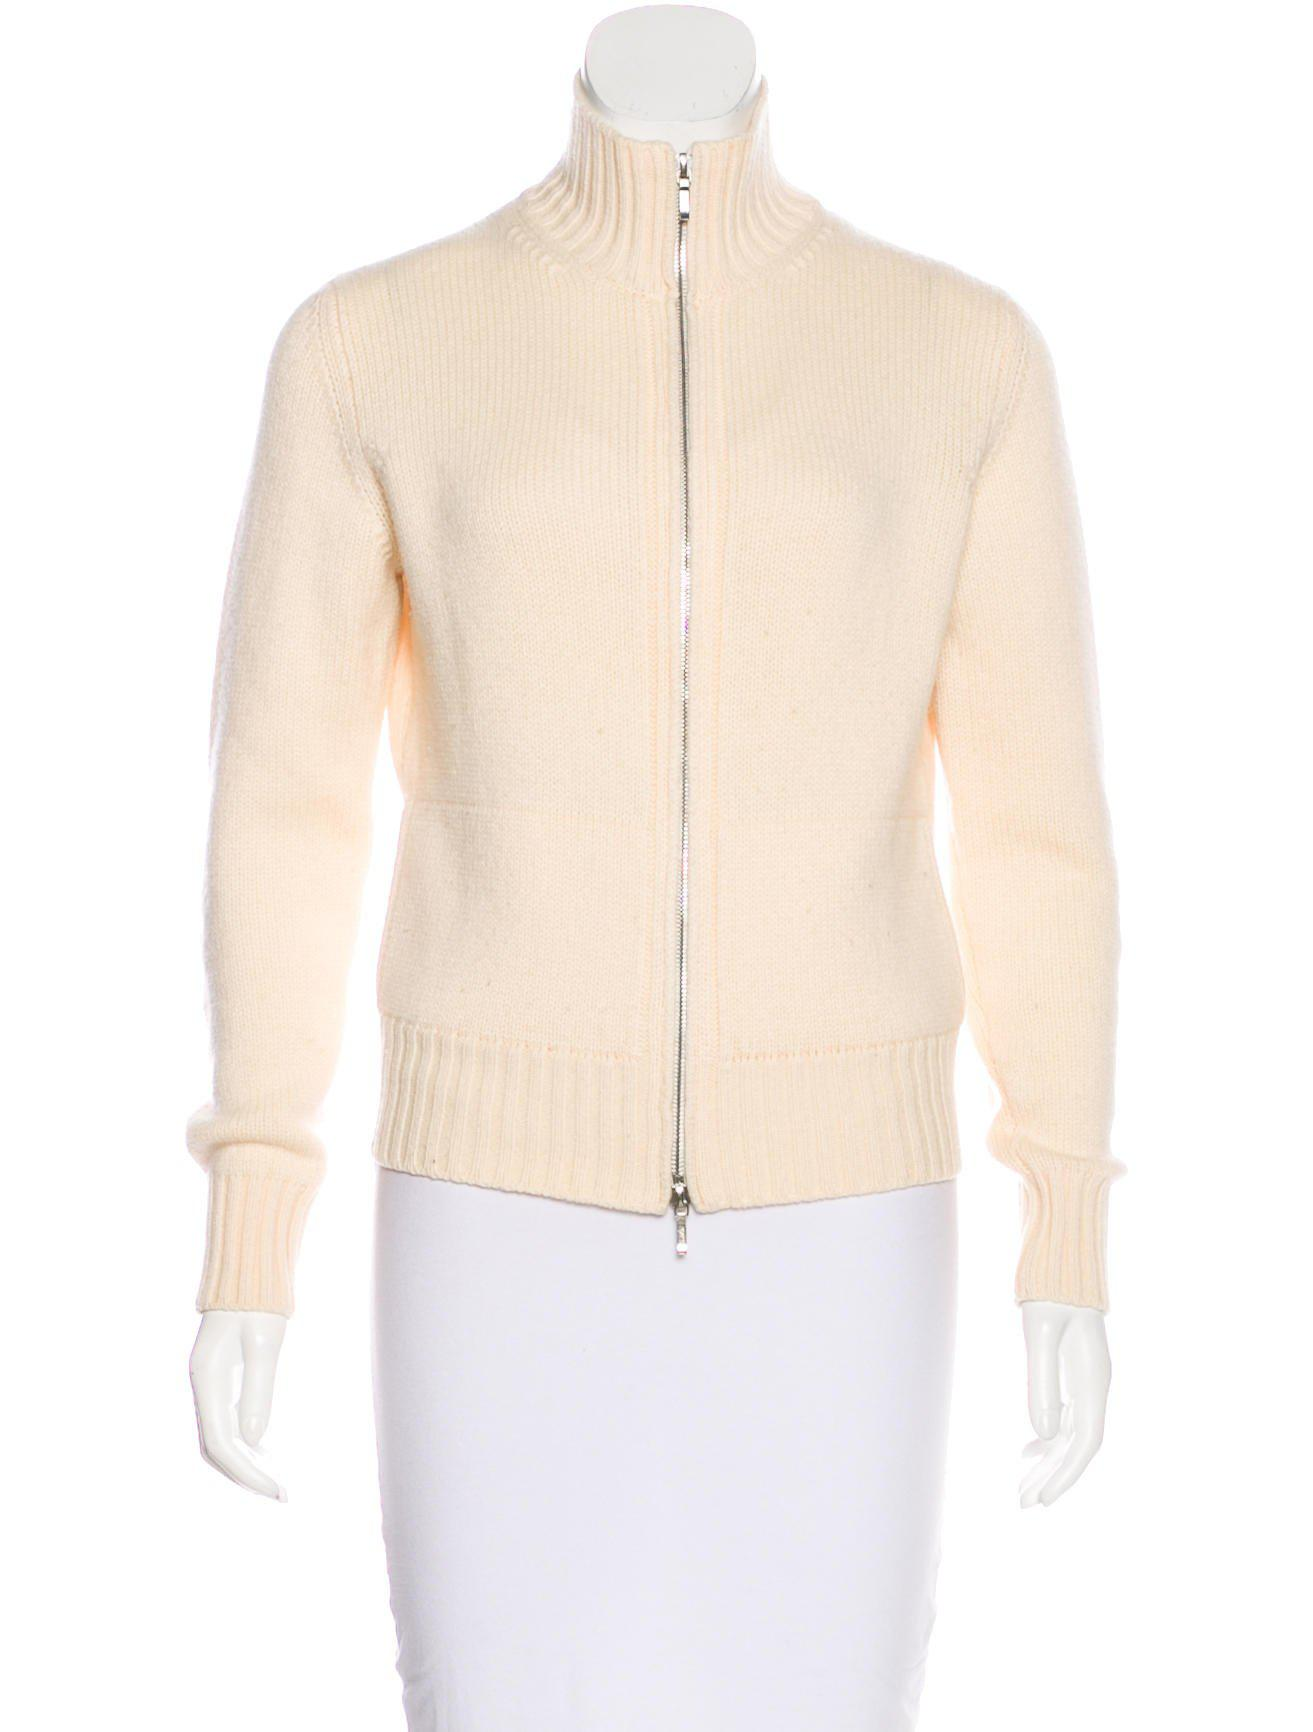 e14a76531 Lyst - Loro Piana Cashmere Knit Cardigan in White